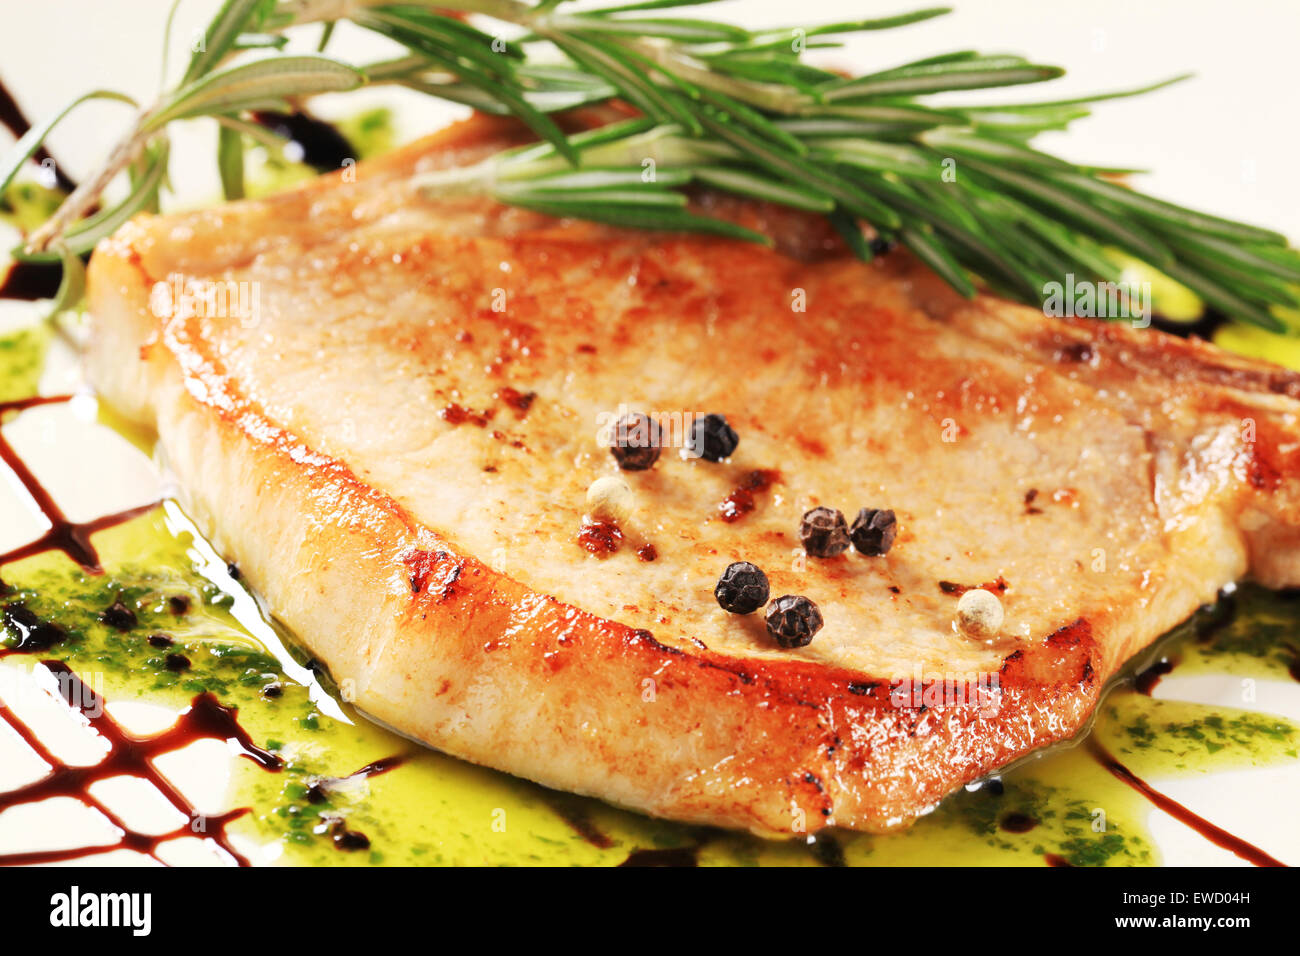 Pan Fried Pork Chop Decorated With Pesto Sauce And Balsamic Drizzle